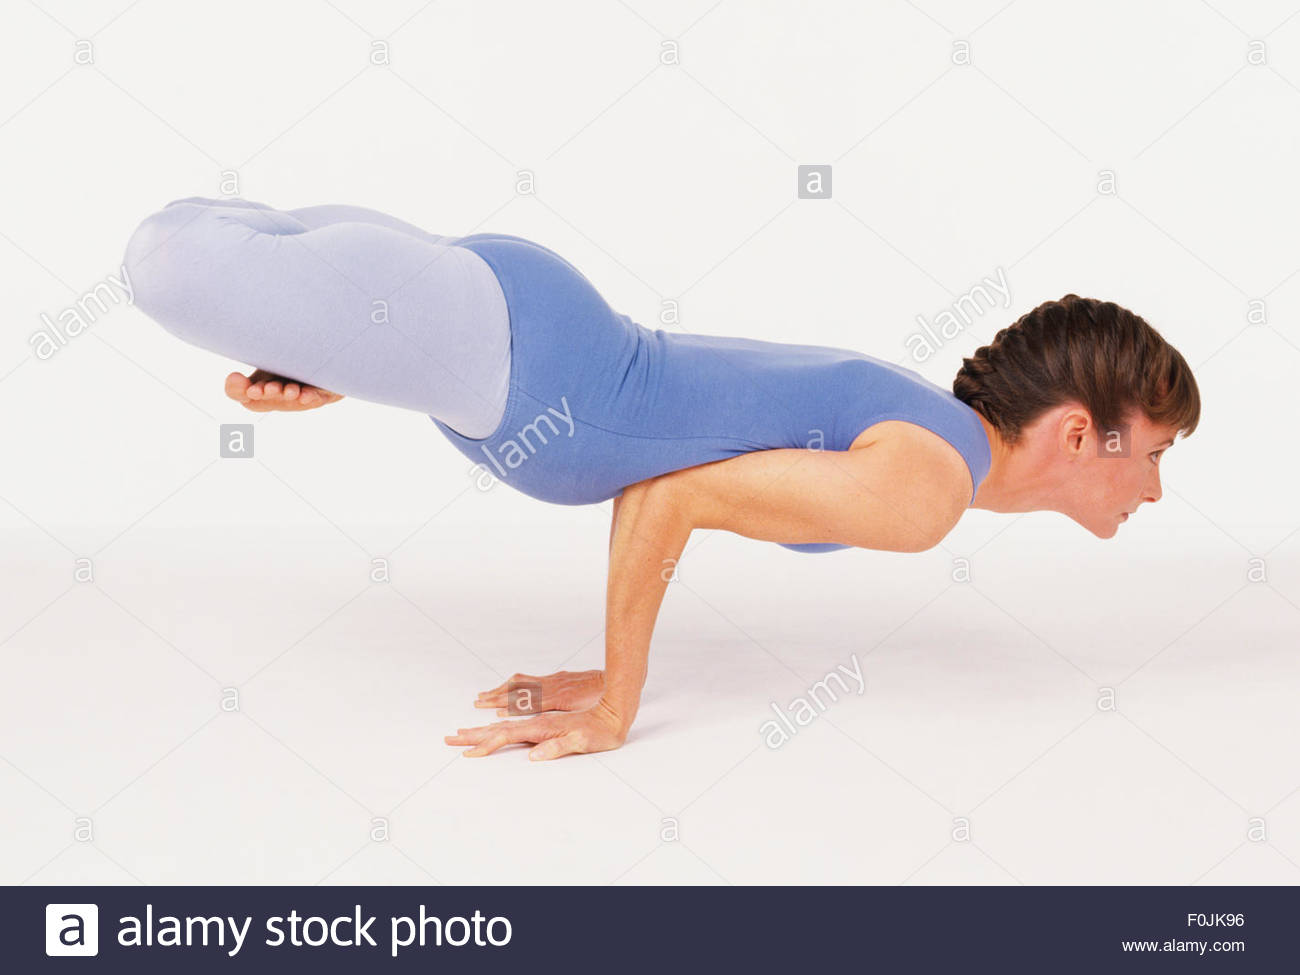 Stock Photo   Yoga Woman Doing The Peacock Mayurasana In Lotus Position  Hands Flat On Floor Supporting Body Elbows Pressing Into Midriff Head